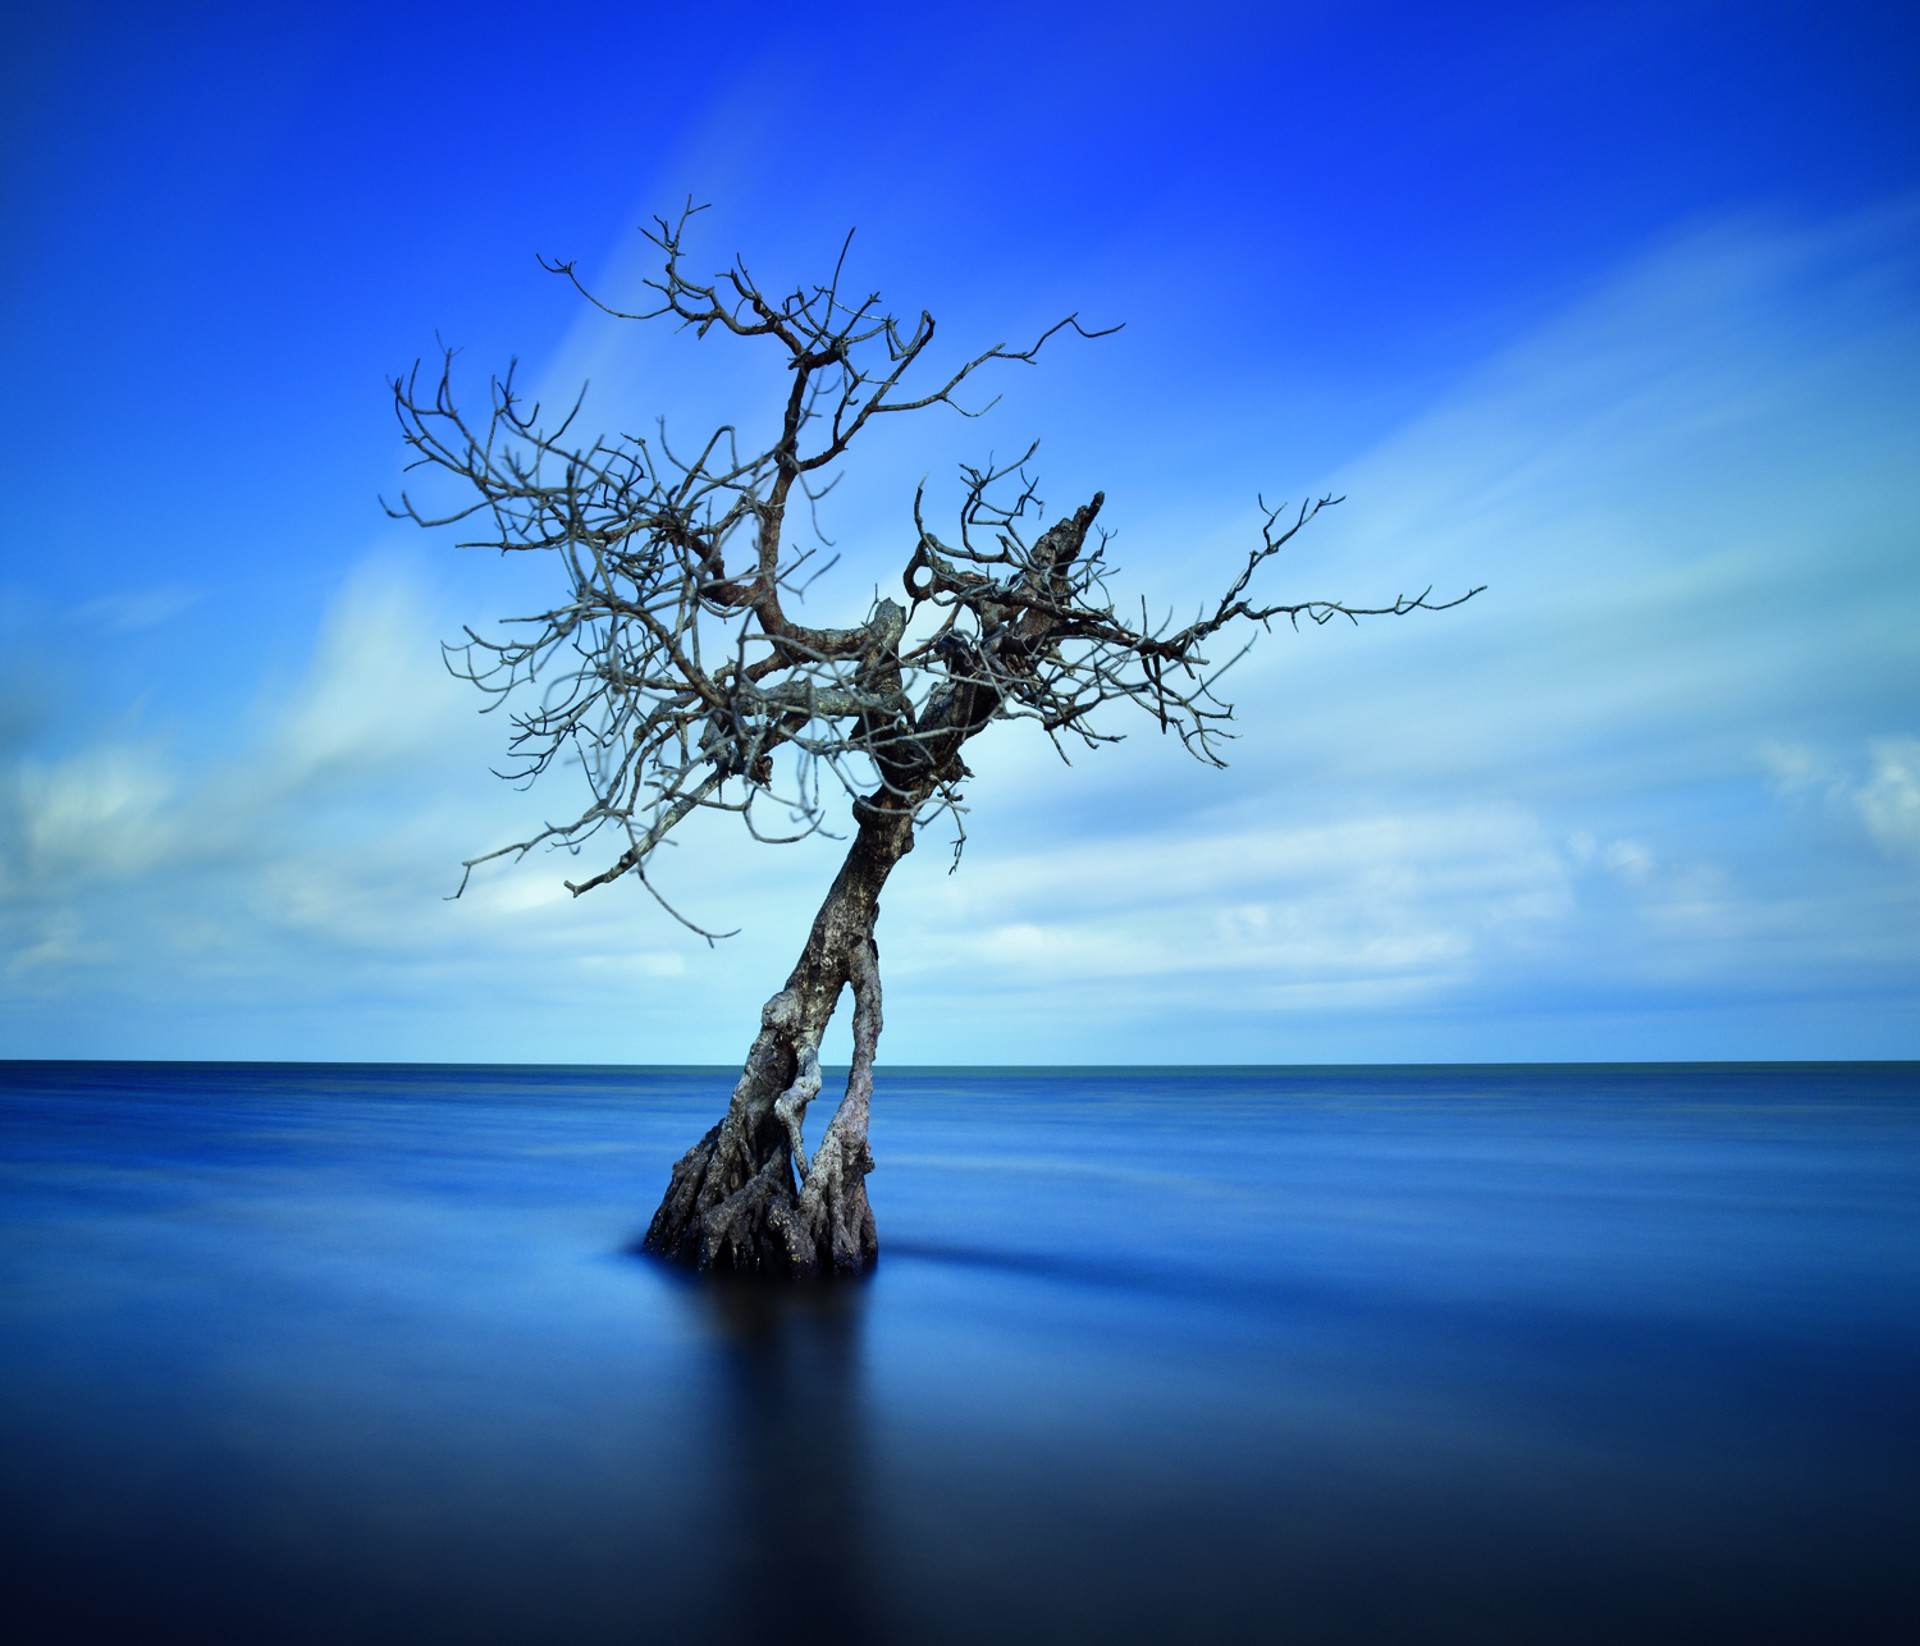 Symphony in Blue, Long Key, Florida by David Magee